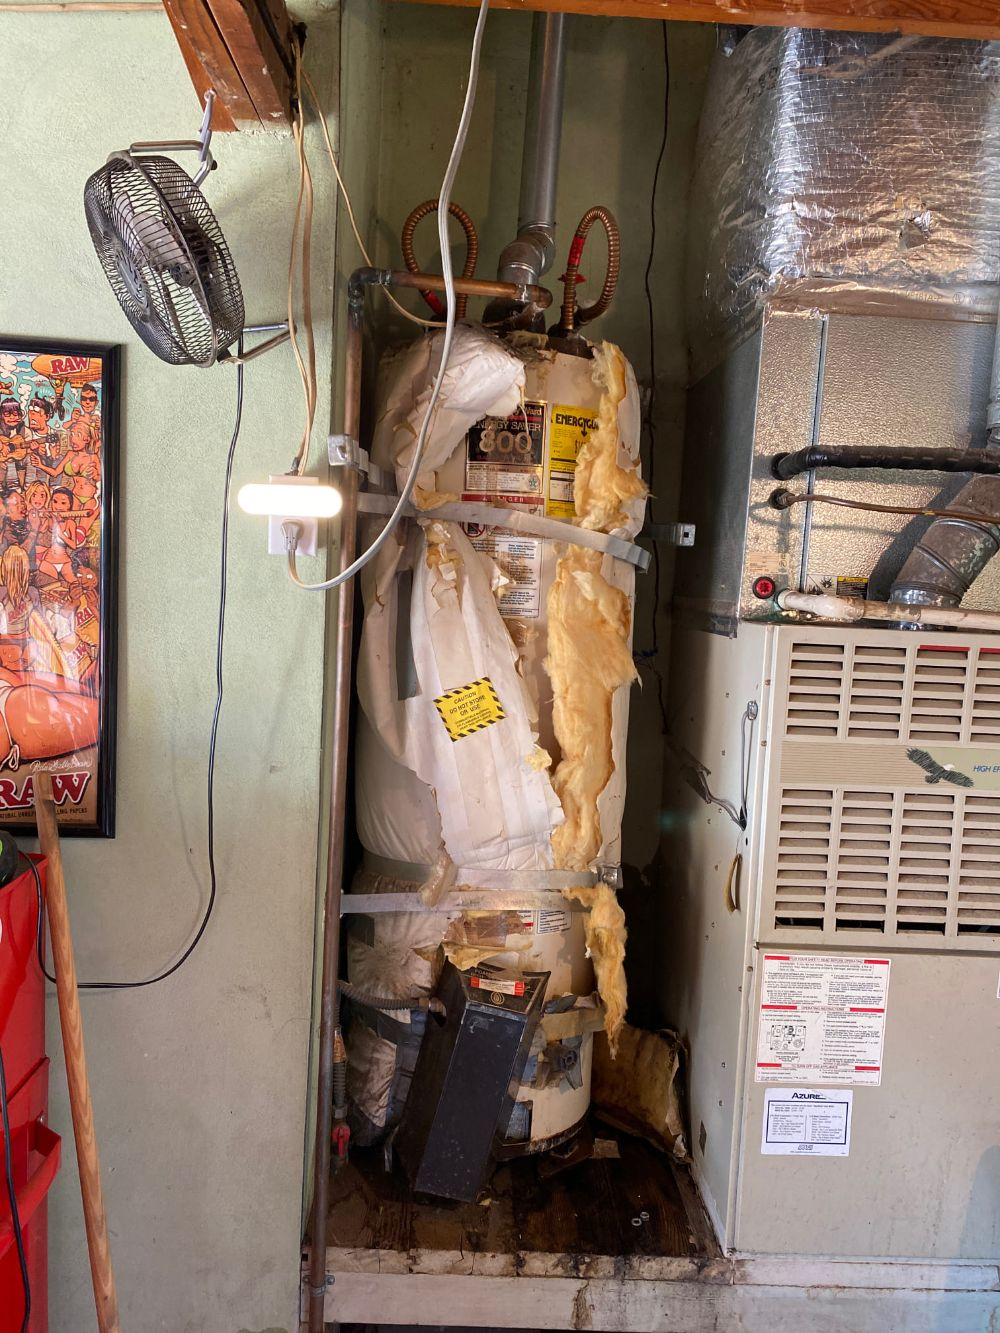 Removal of old leaking Water Heater with Brand New Rheem Water Heater in Stockton